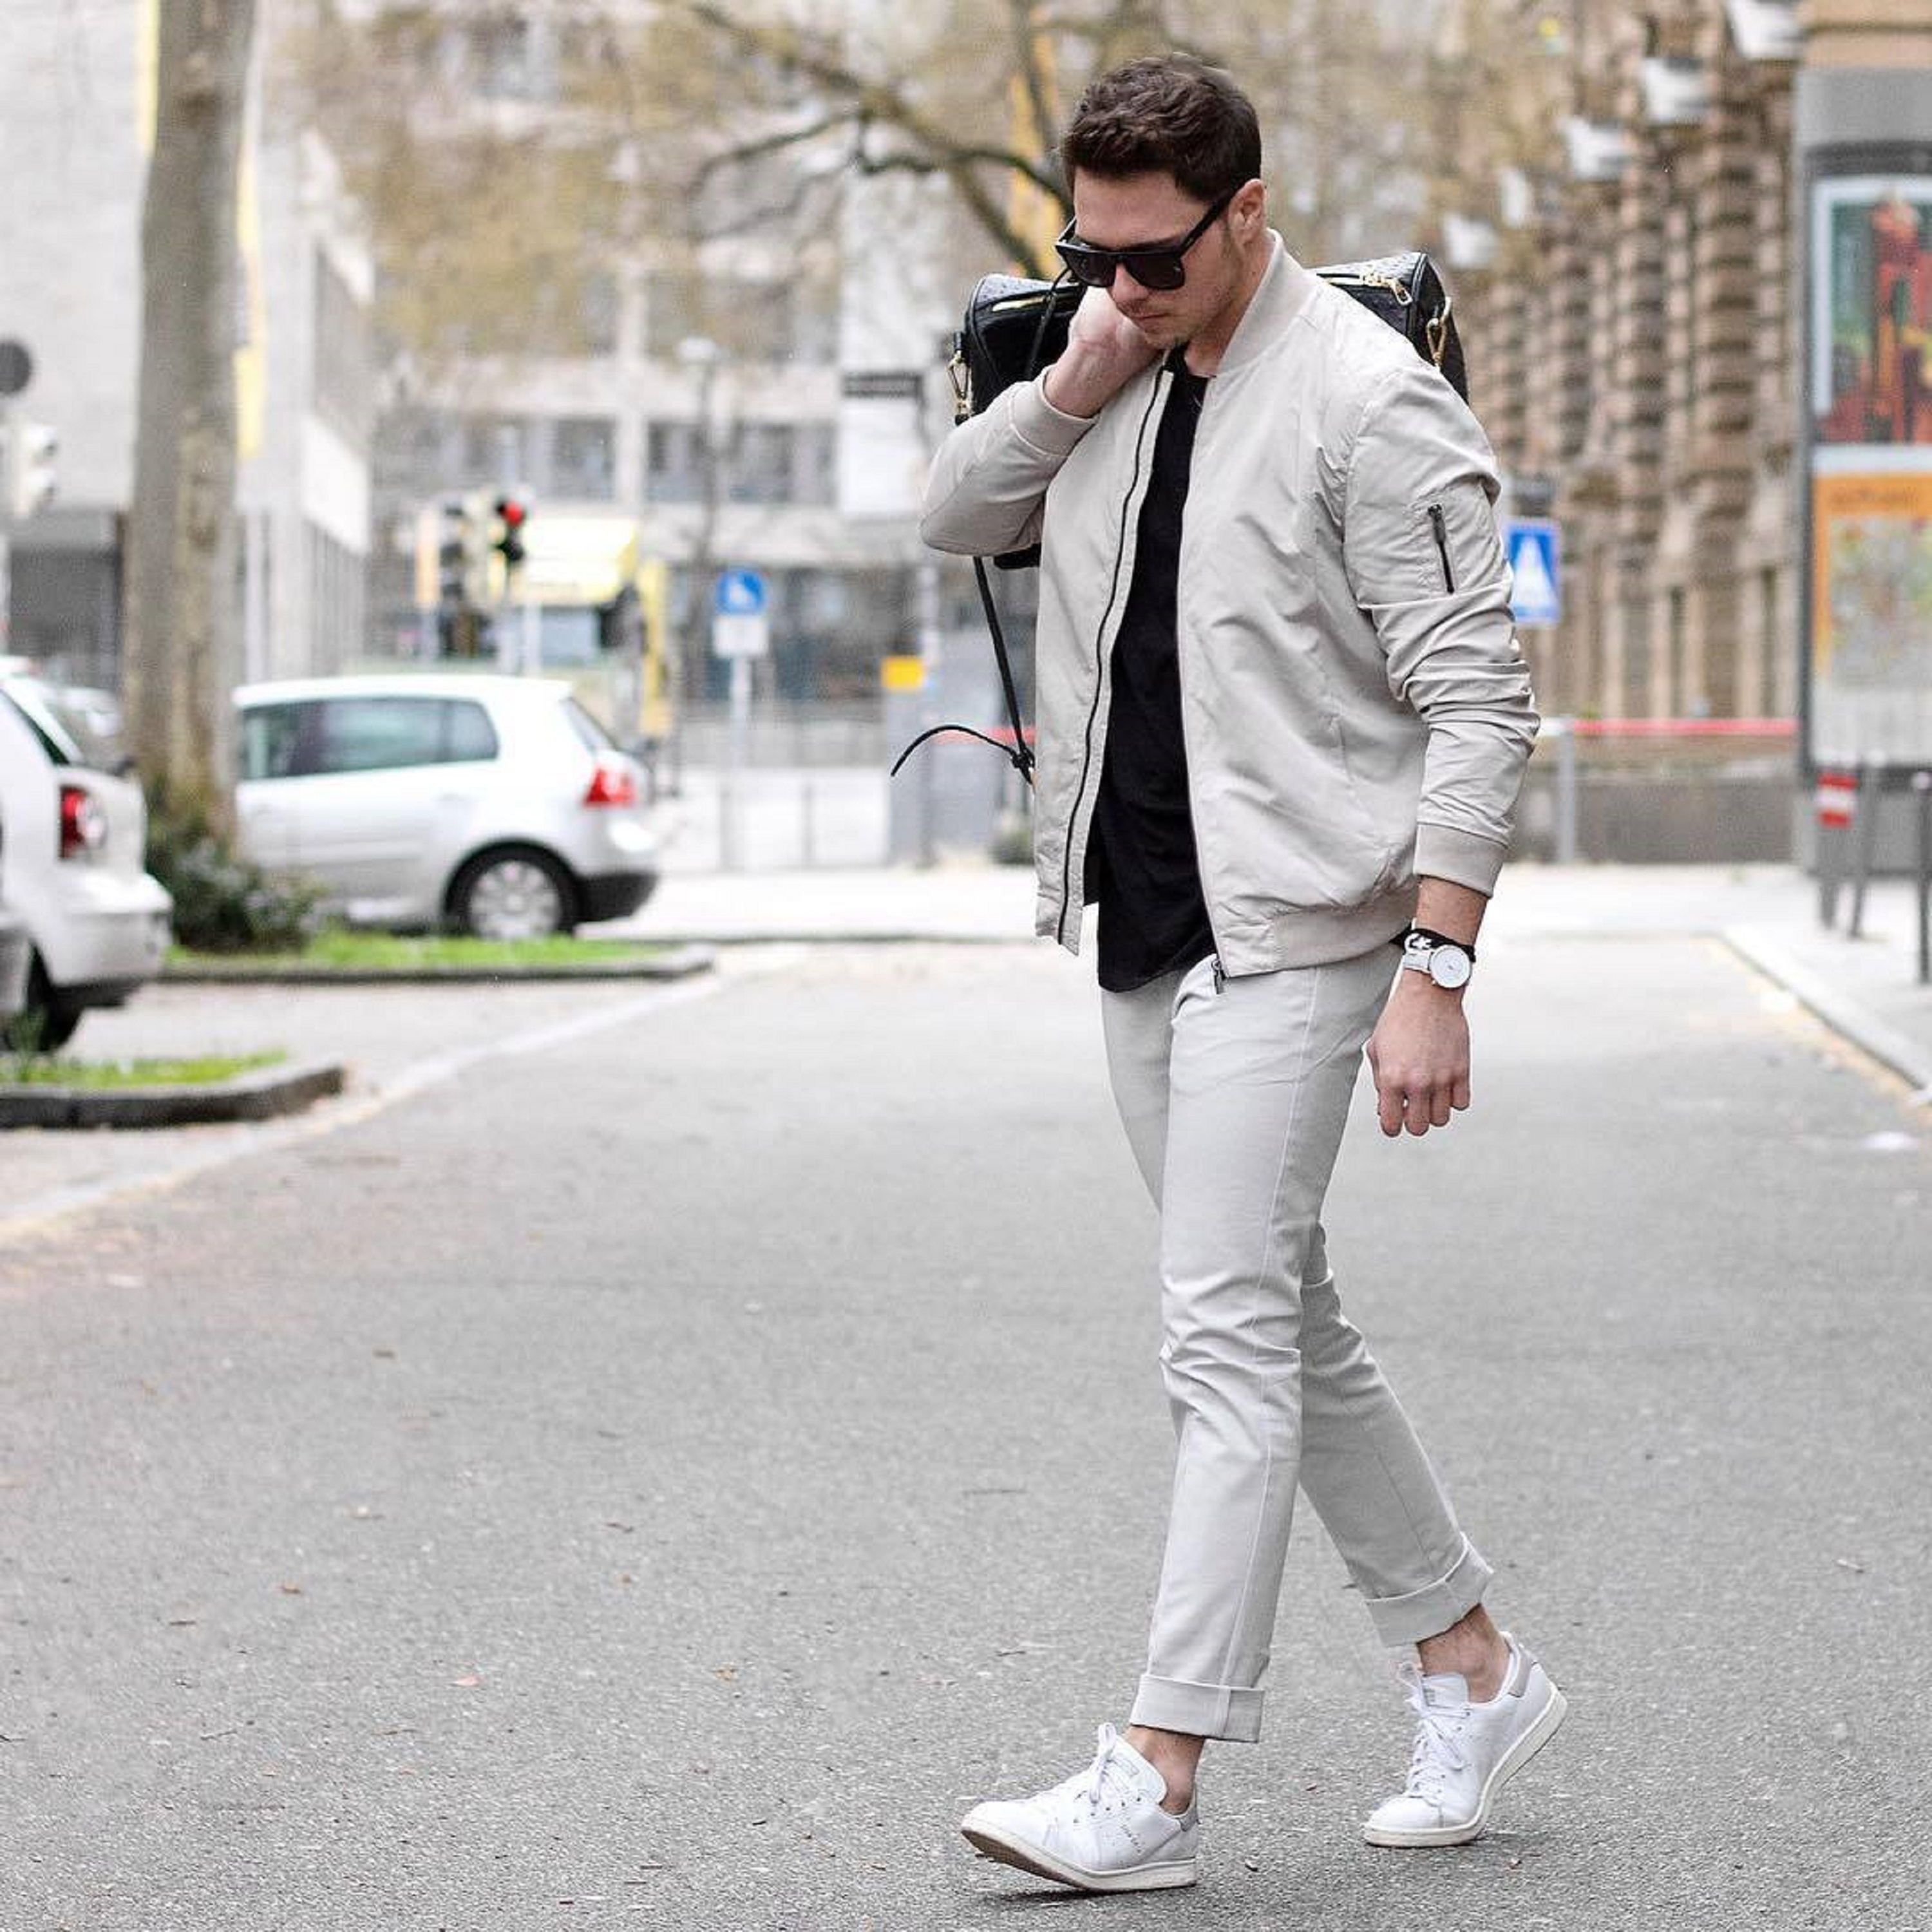 7 snazzy ways to style white sneakers